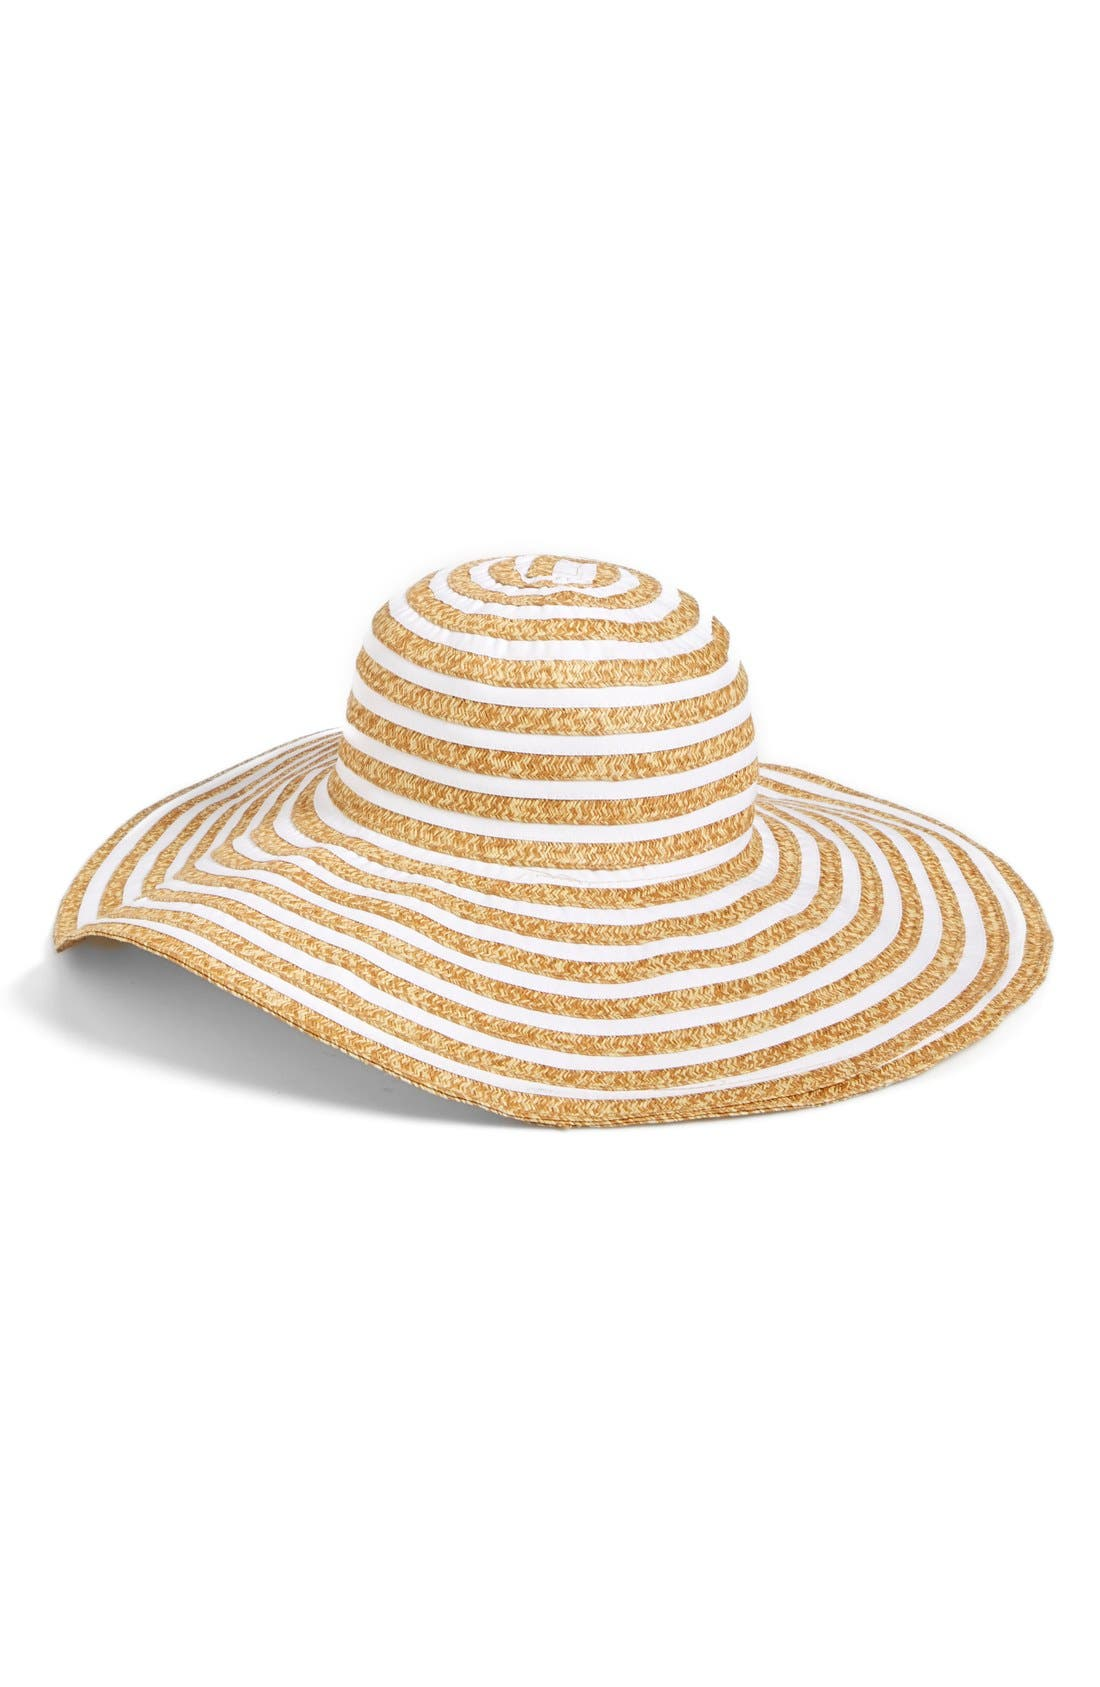 Main Image - August Hat 'Mix It Up' Floppy Straw Hat